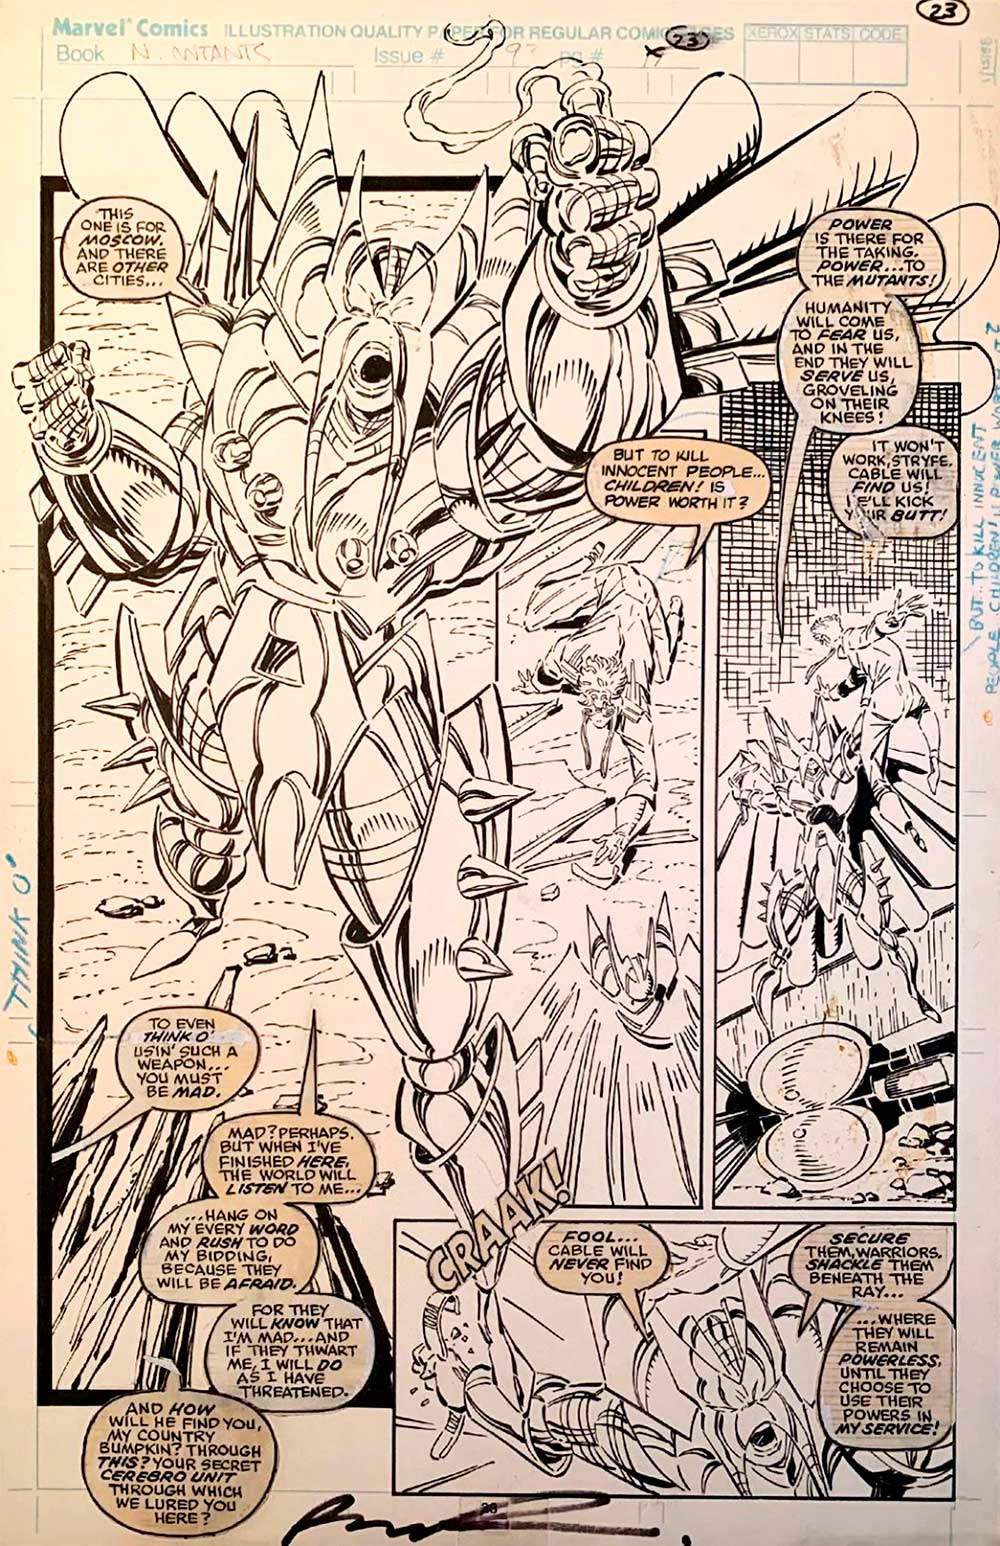 rob-liefeld-new-mutants-original-comic-art